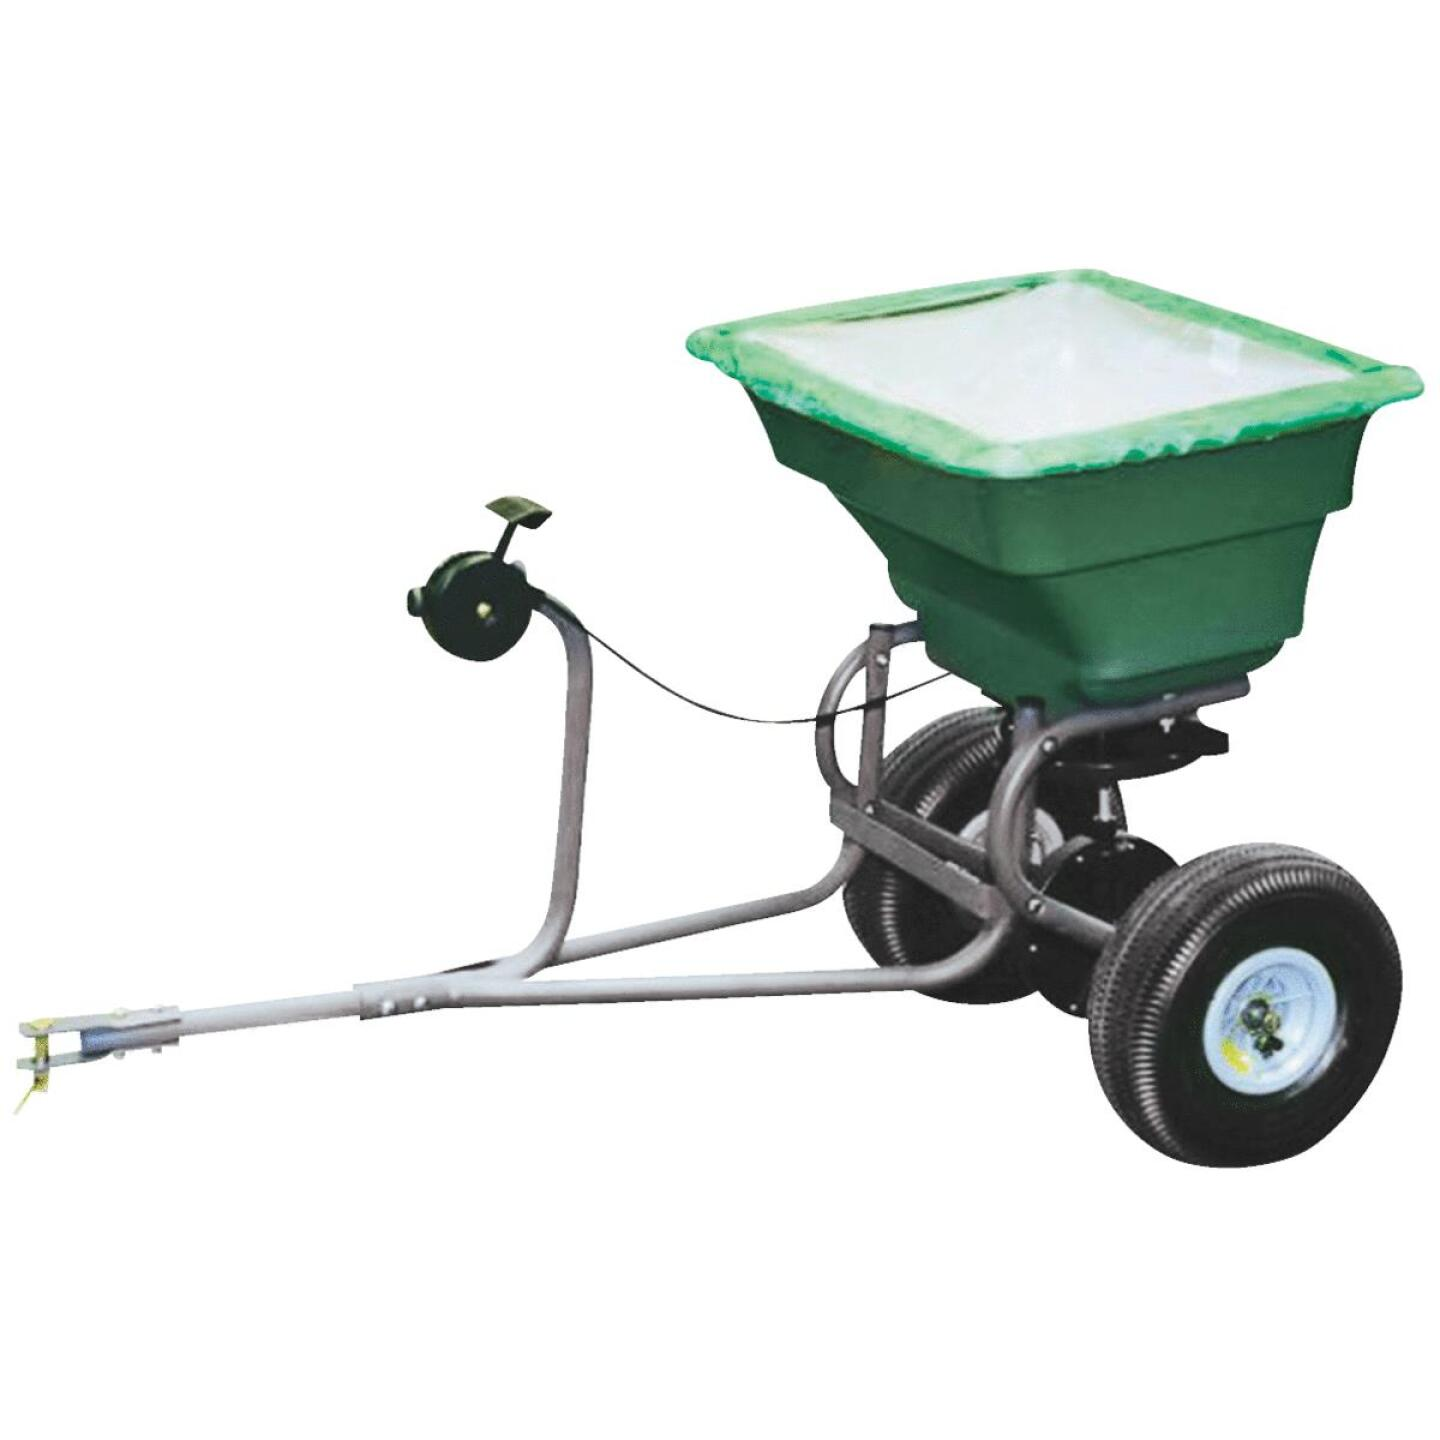 Precision 75 Lb. Self-Lubricationg Tow Broadcast Fertilizer Spreader Image 1